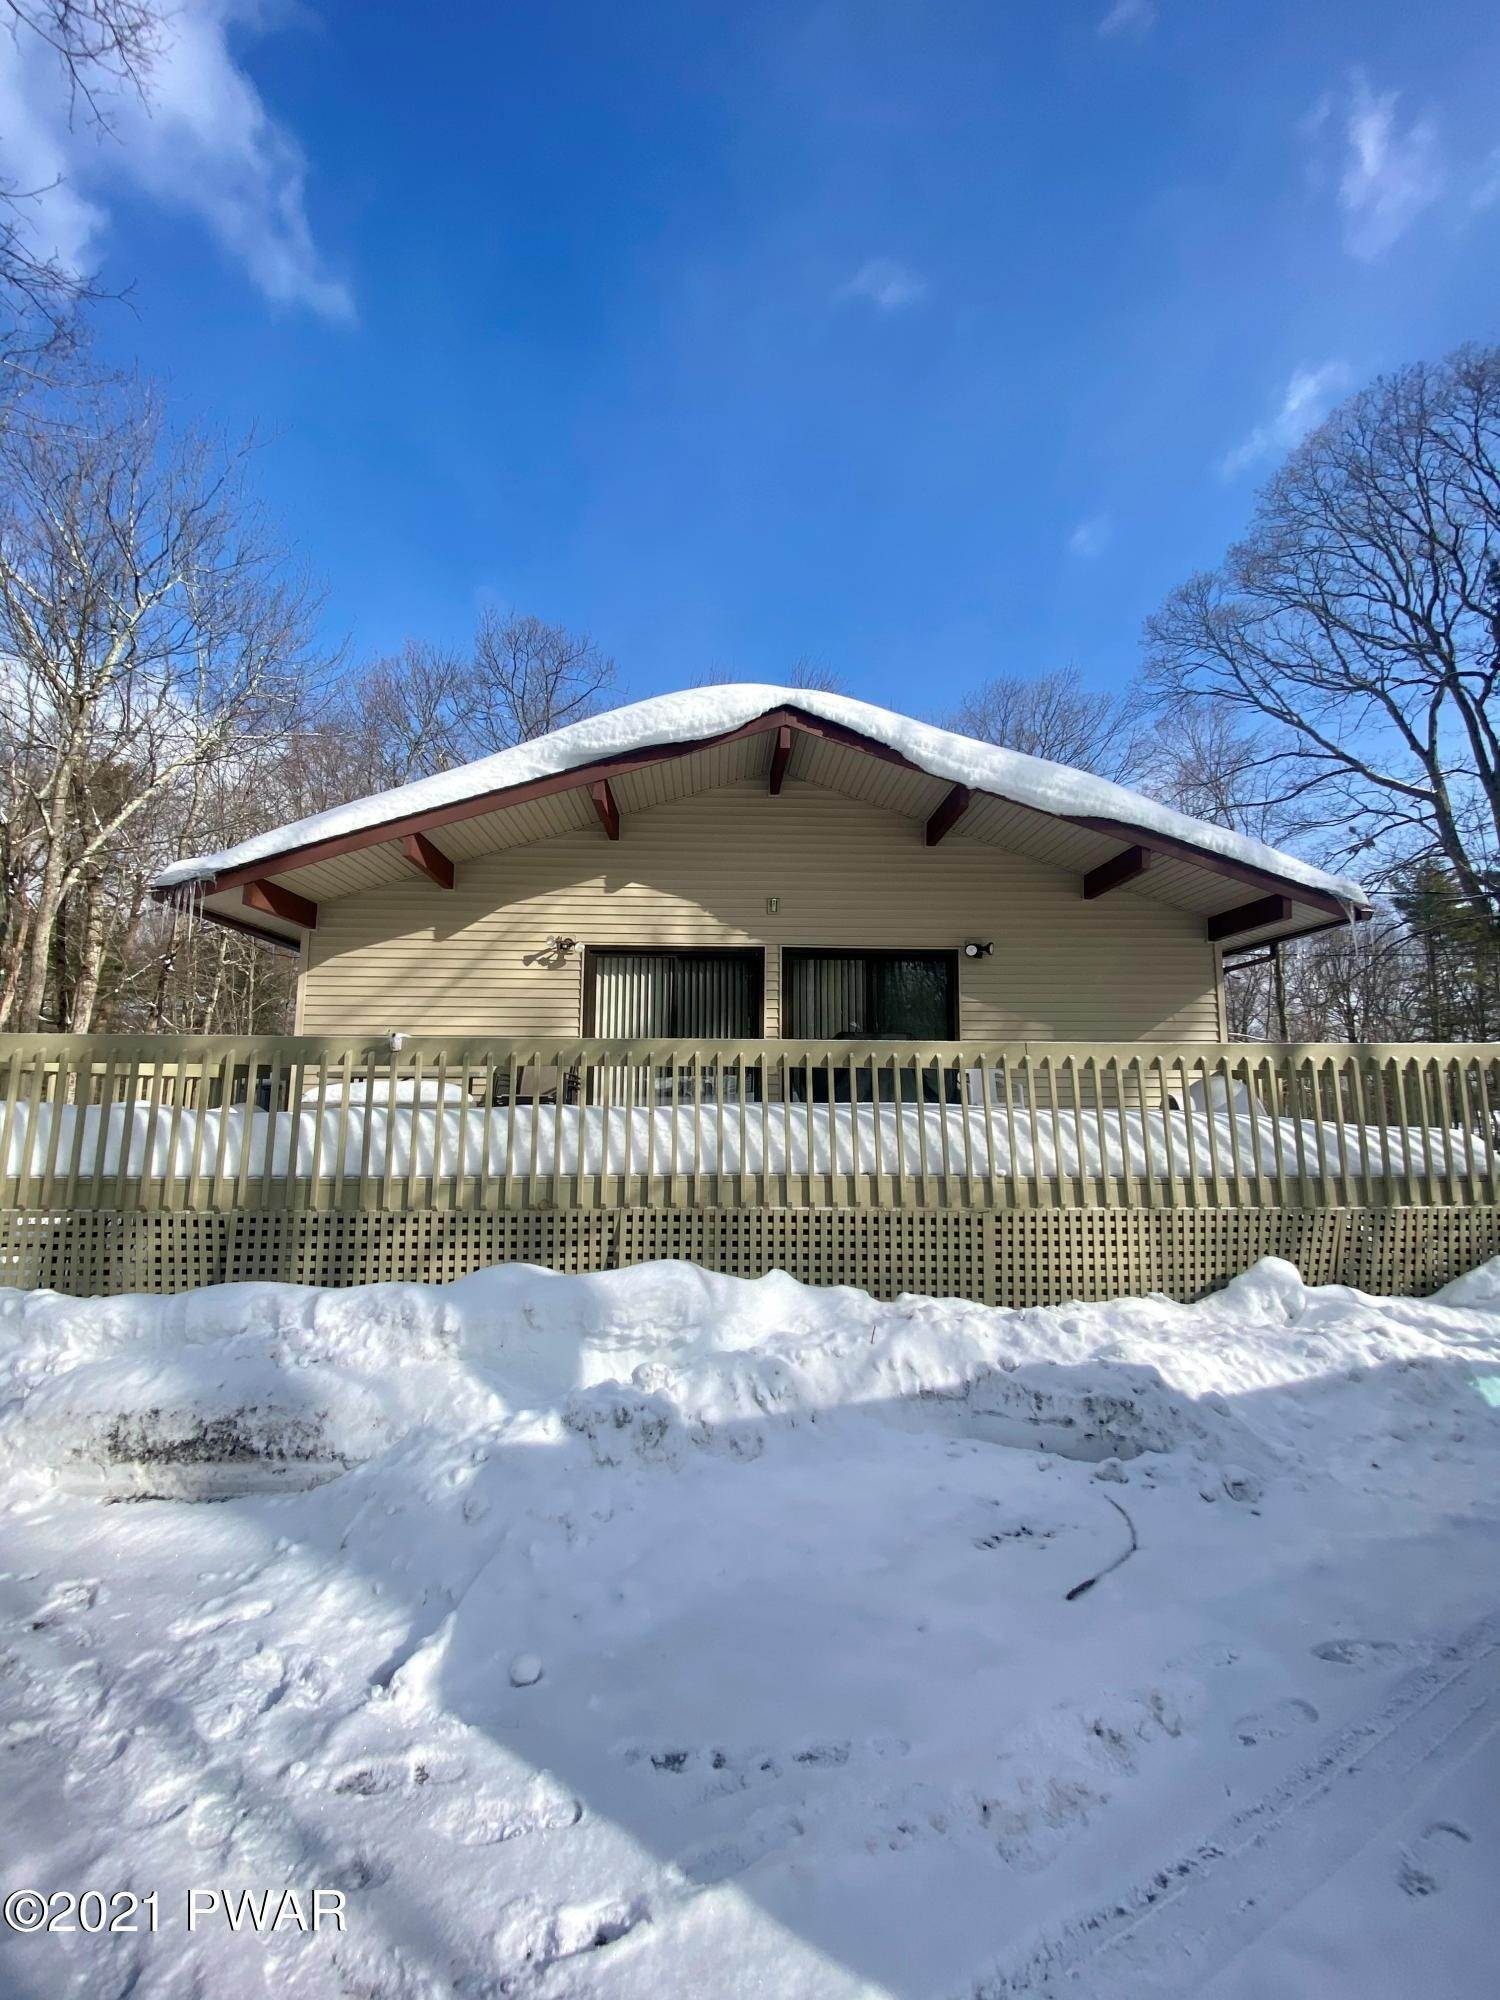 Property for Sale at 178 Hawthorne Dr Milford, Pennsylvania 18337 United States